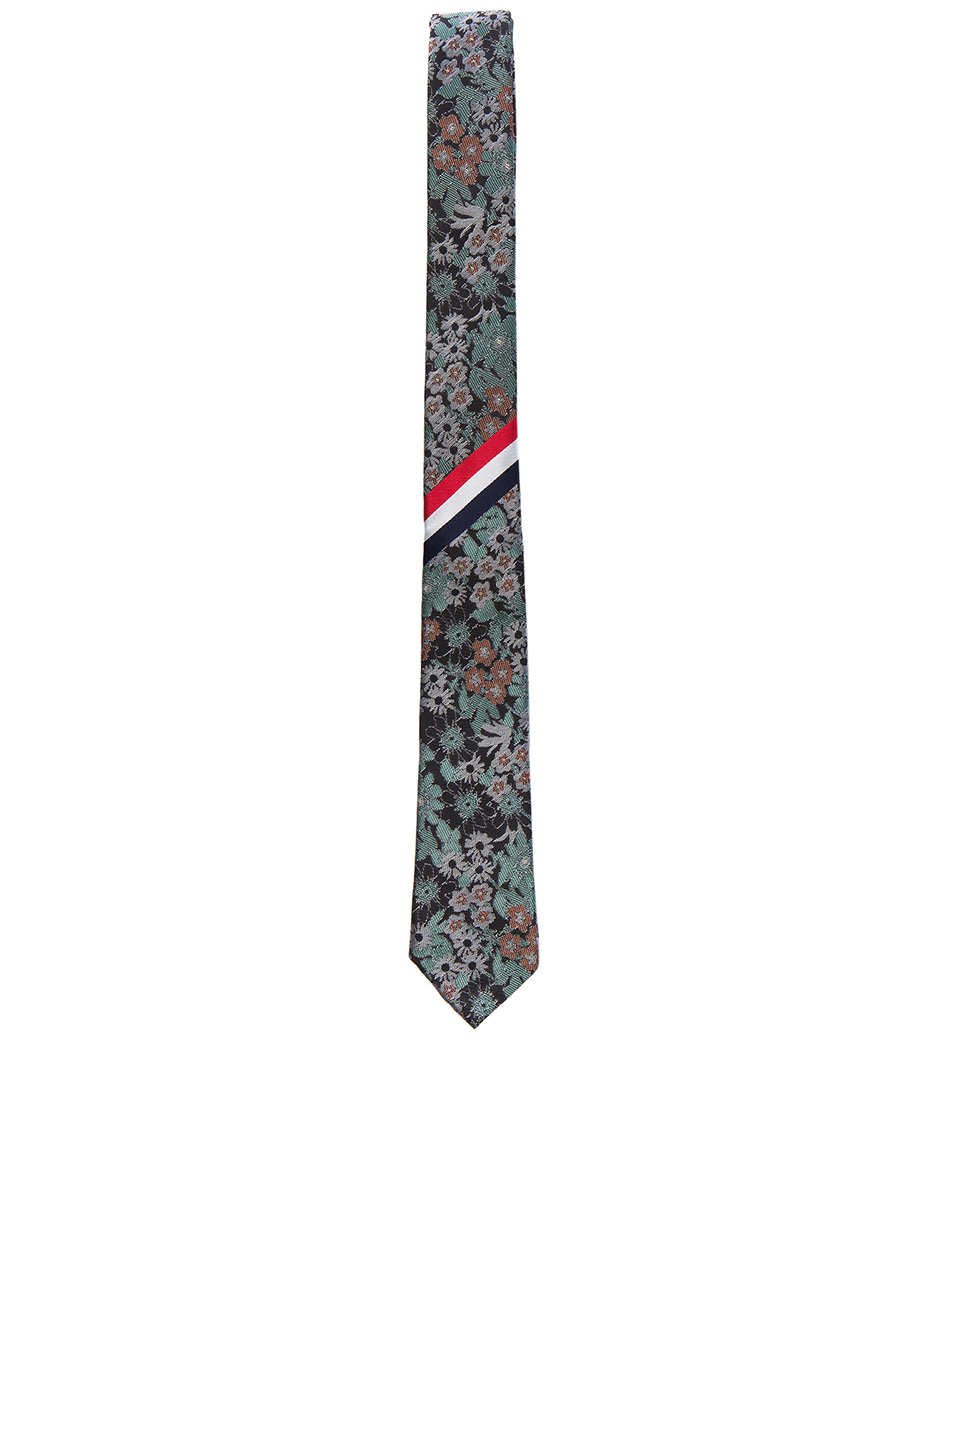 Thom Browne Wildflower Jacquard Tie in Floral,Green